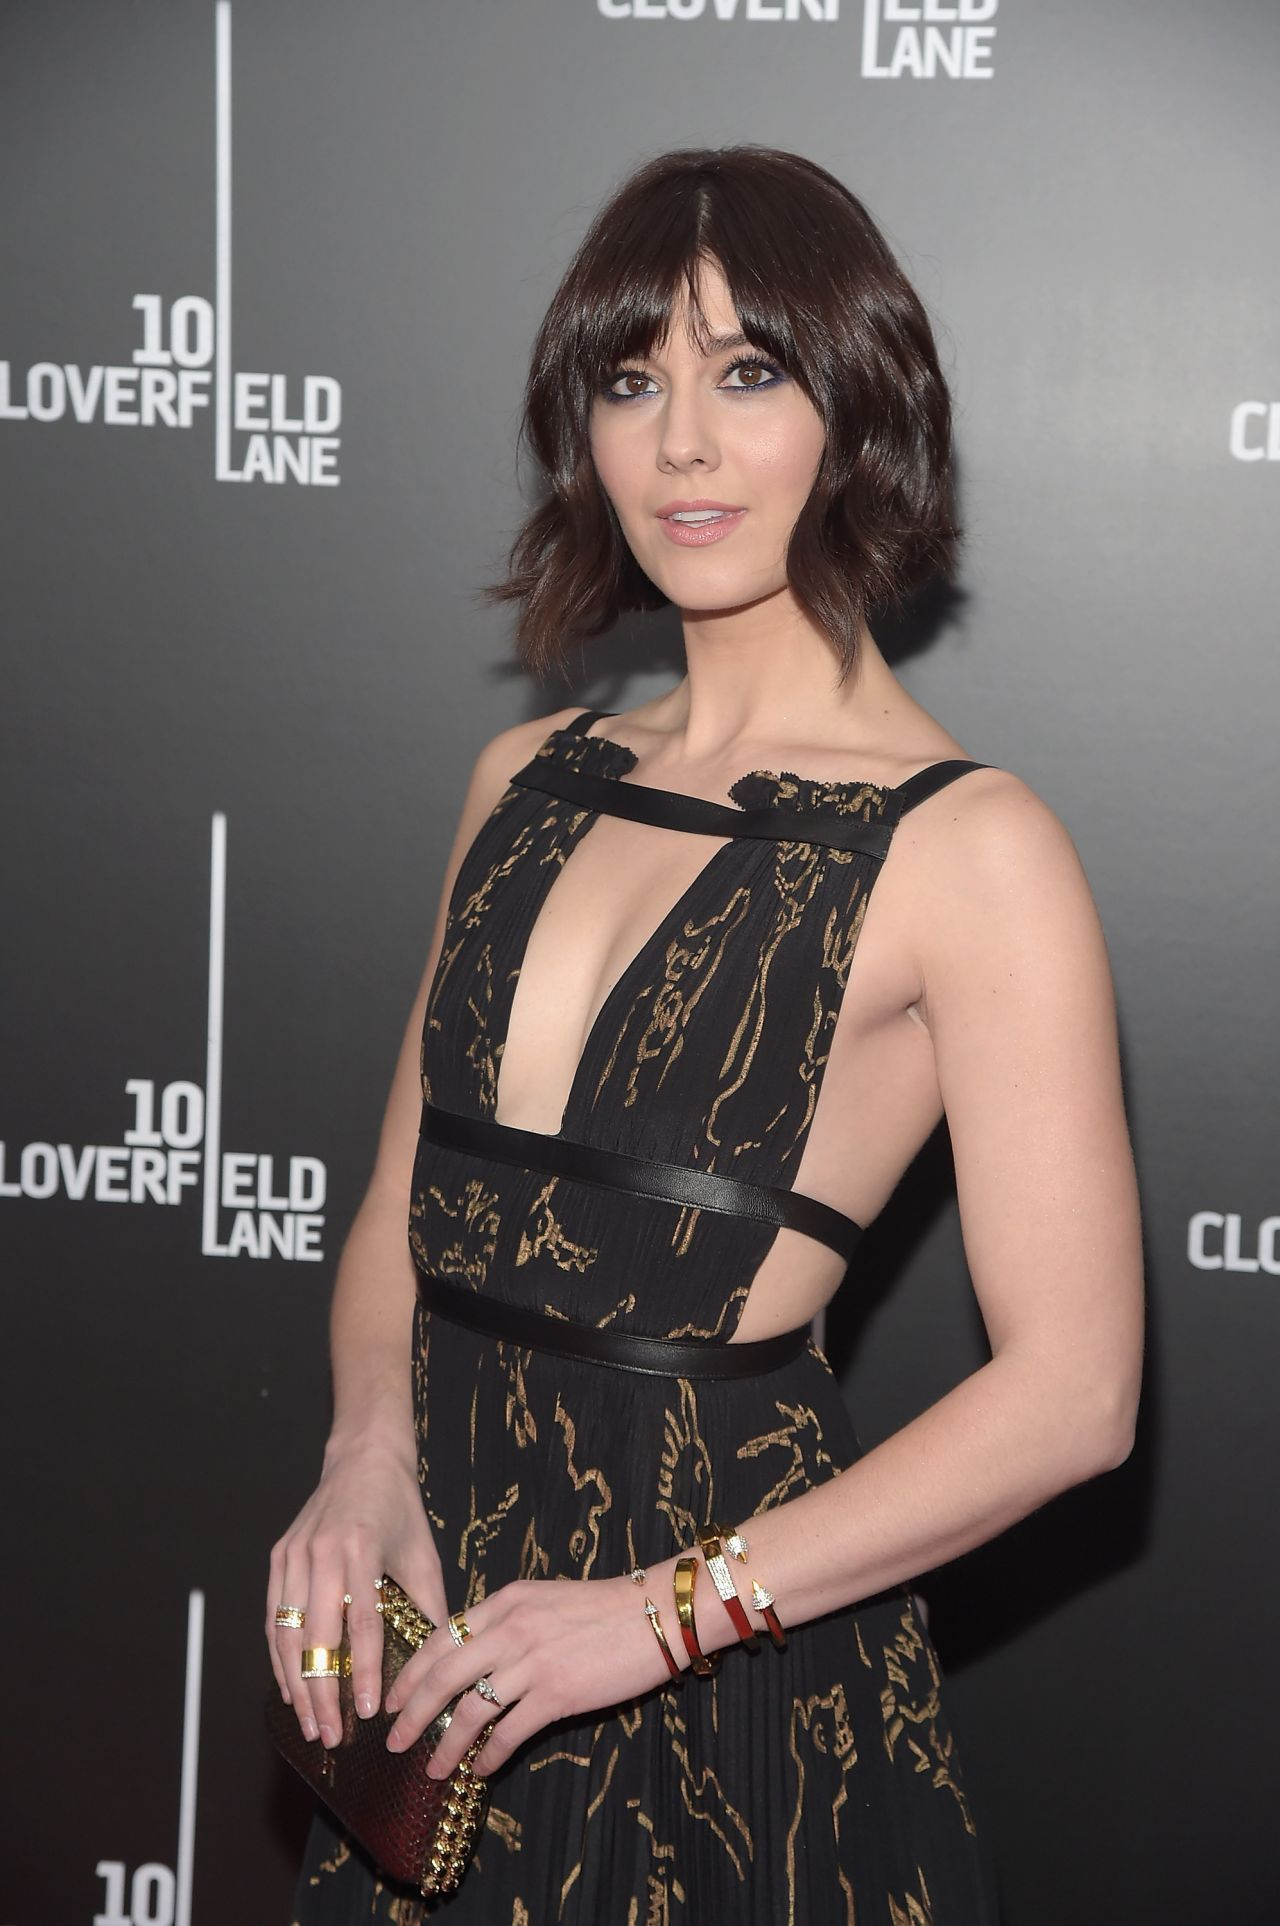 mary-elizabeth-winstead-10-cloverfield-lane-premiere-<img src=